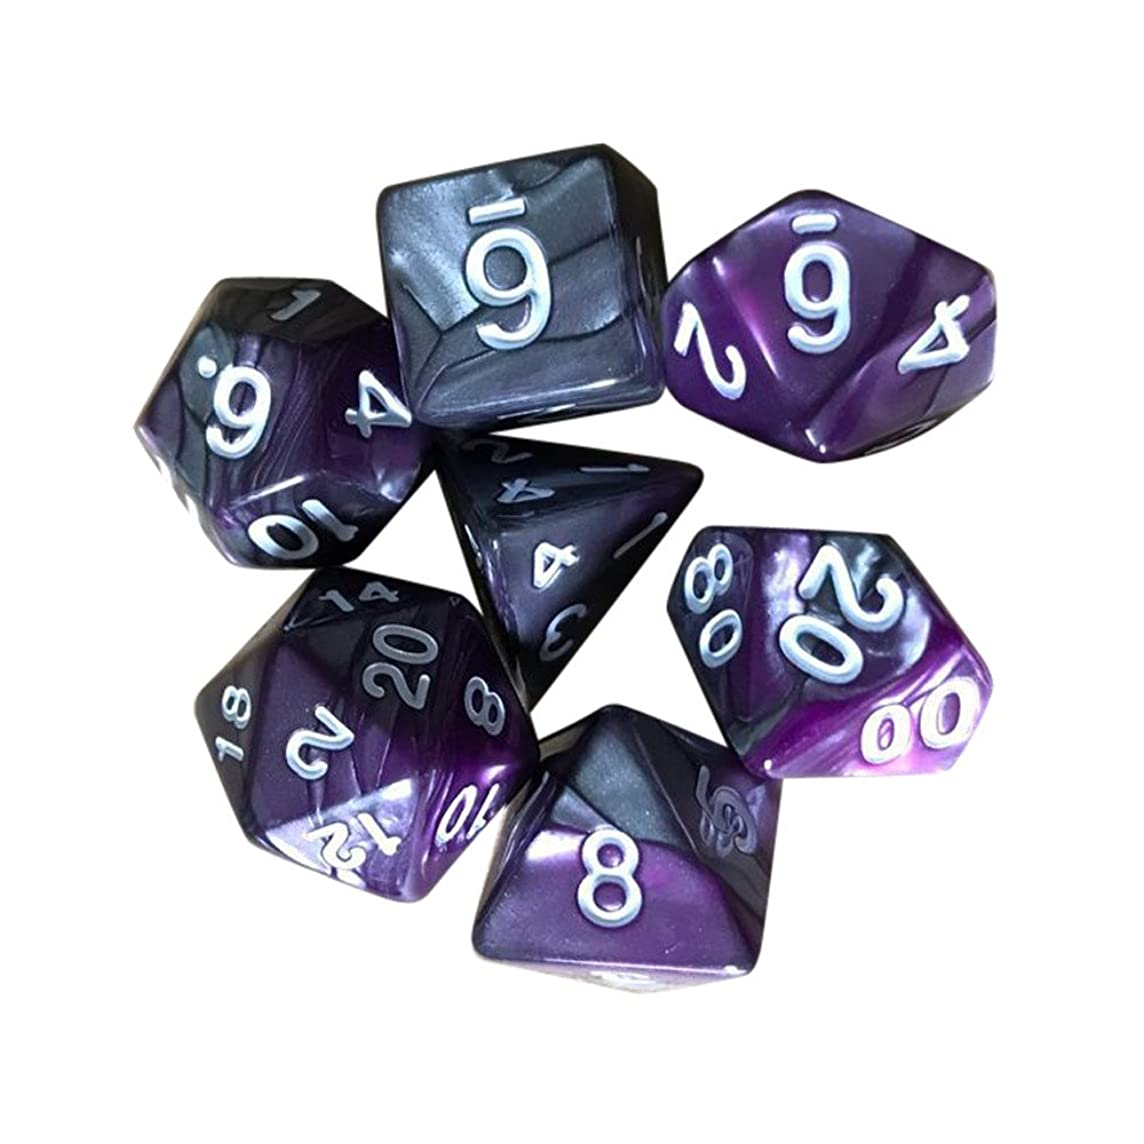 Nesee Dice, 7pcs TRPG Game Dungeons & Dragons Polyhedral D4-D20 Multi Sided Acrylic Gaming Dice Gift for TRPG Game Lovers